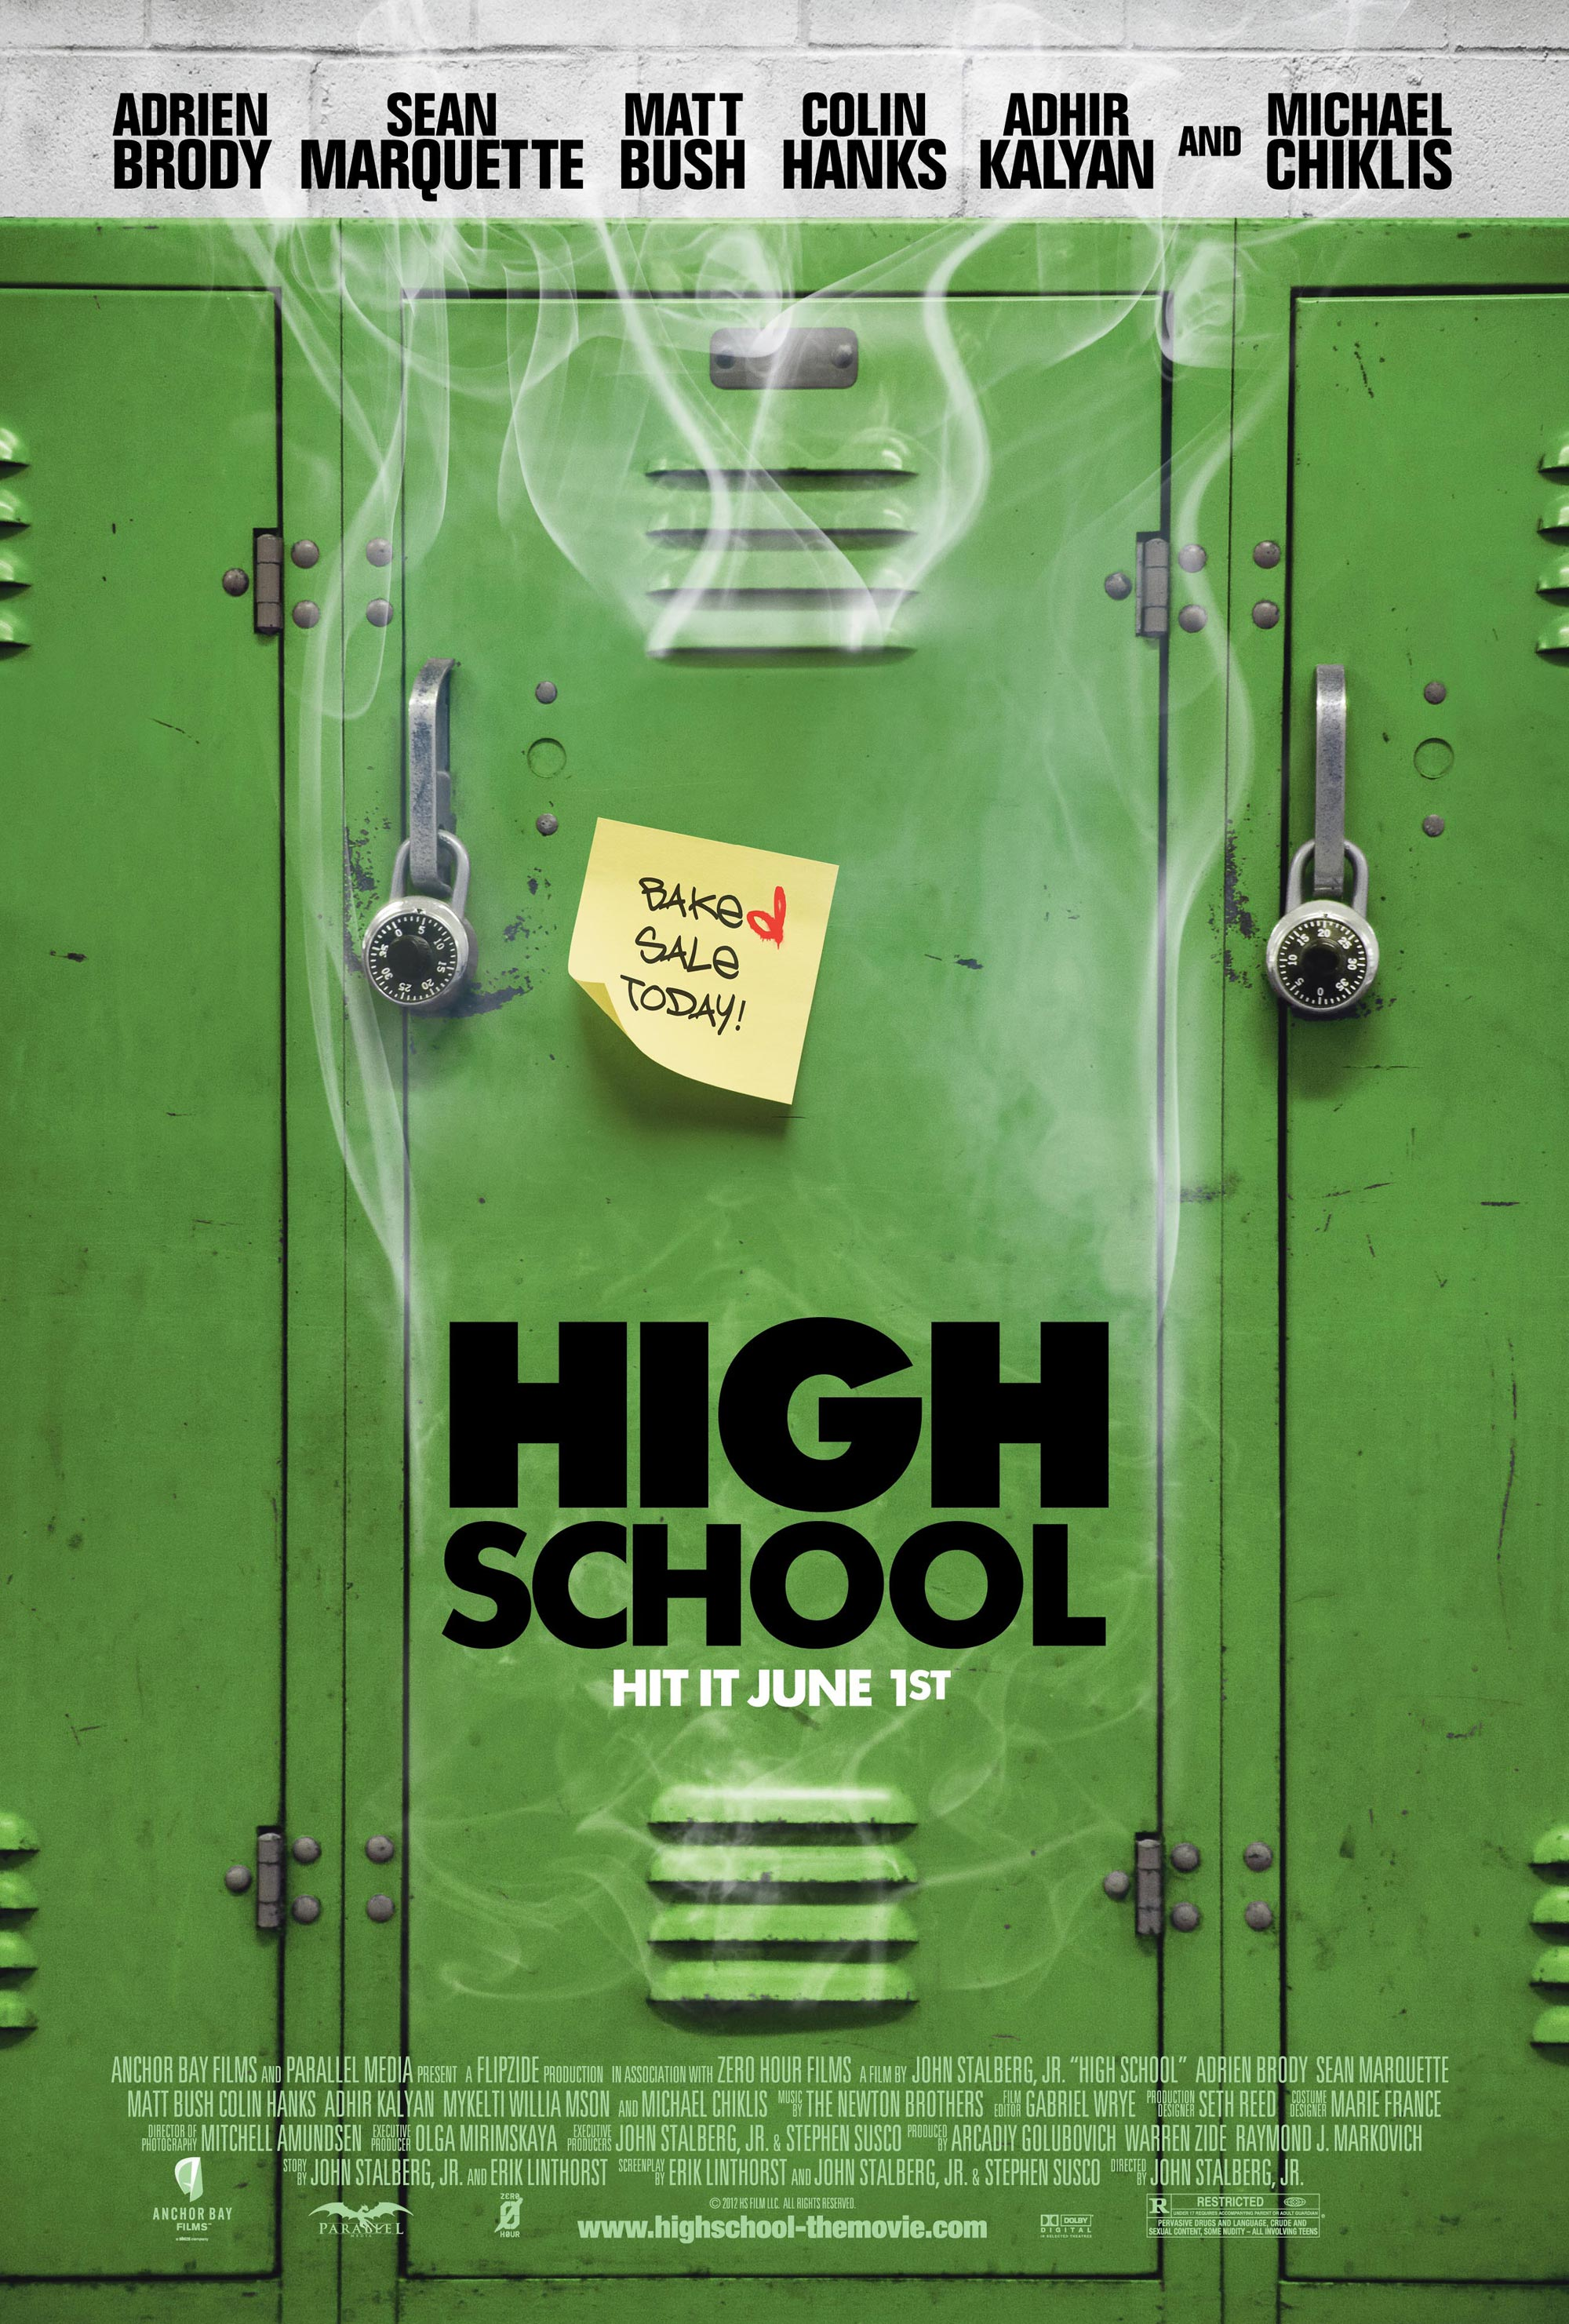 New HIGH SCHOOL Poster